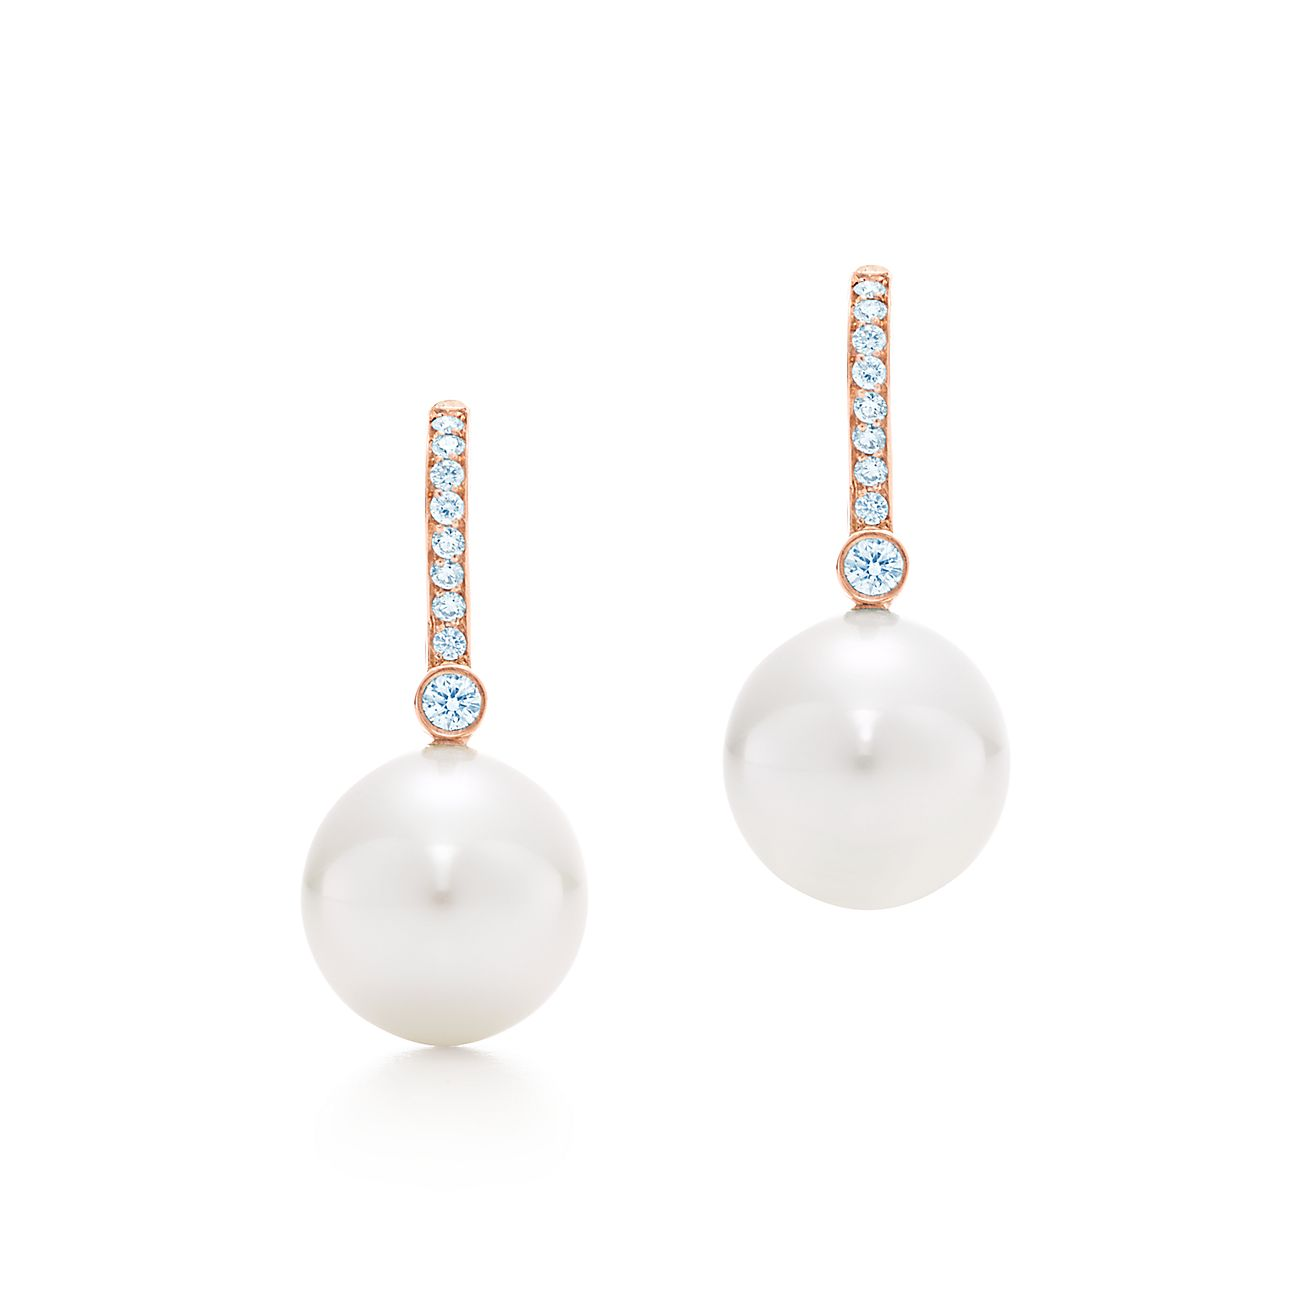 Earrings In 18k Rose Gold With South Sea Cultured Pearls And Diamonds Tiffany Co